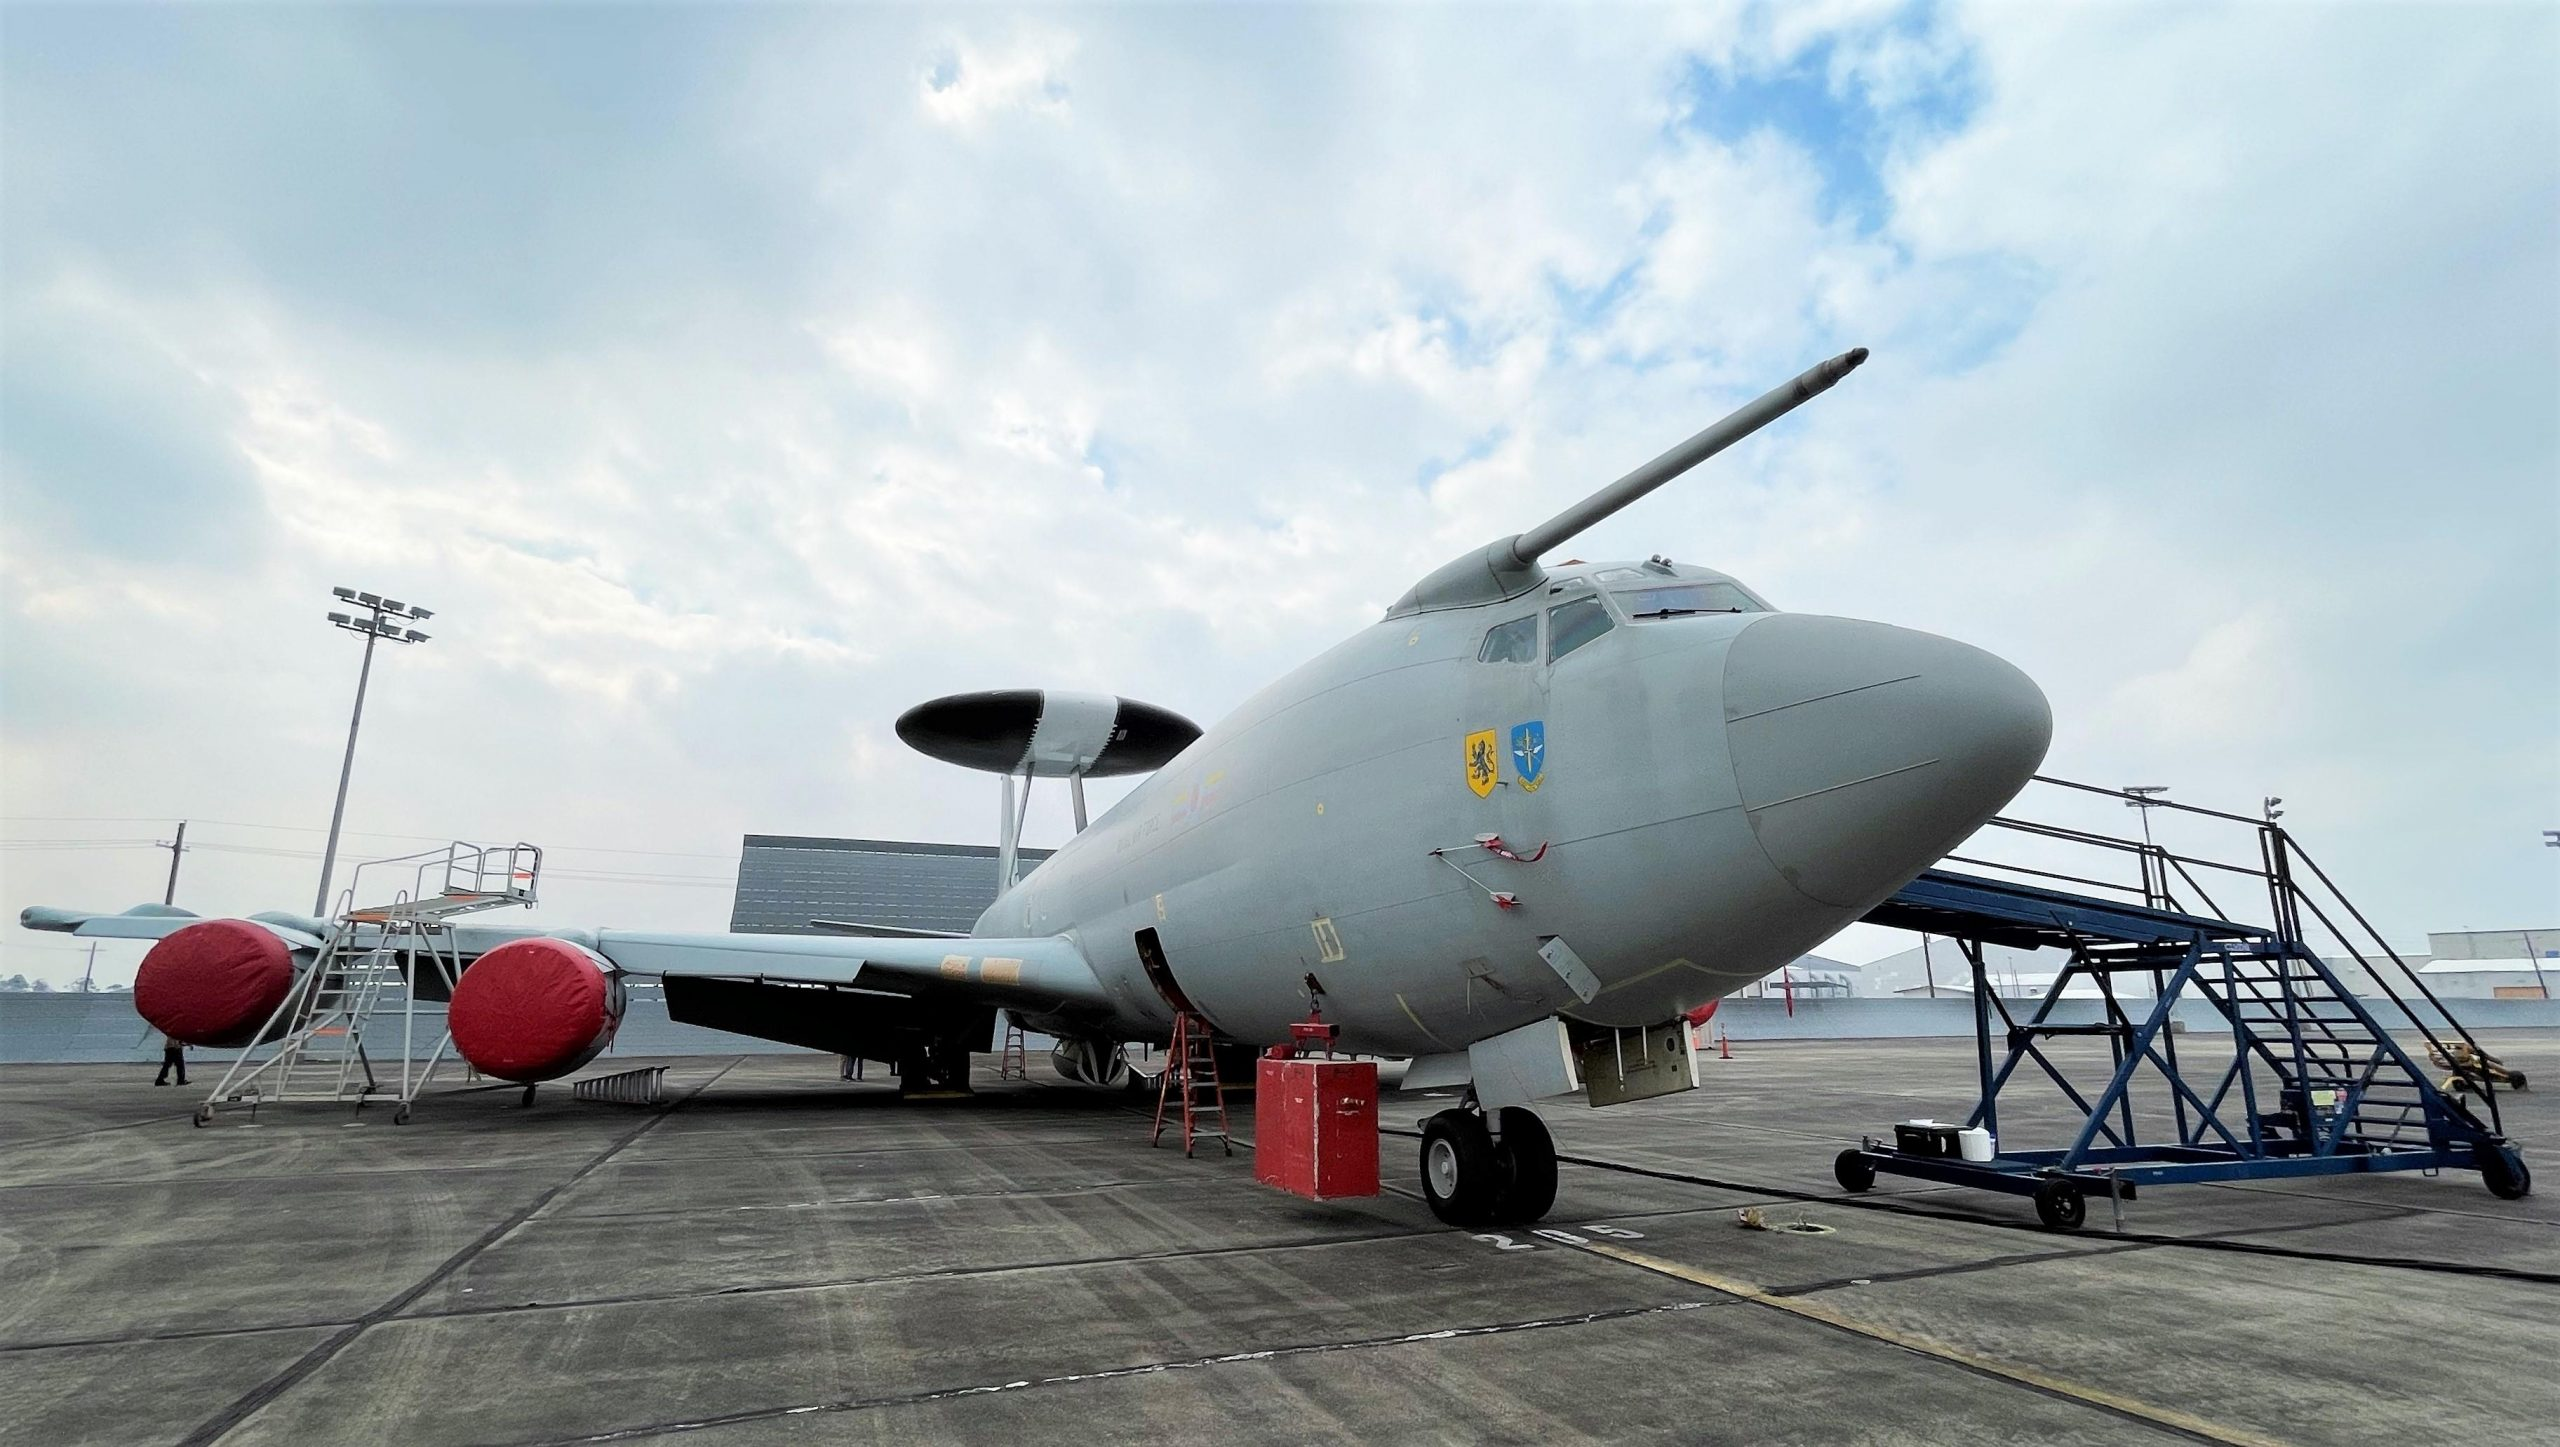 US Navy Acquires Boeing E-3 Sentry from Royal Air Force as Trainer for E-6B Mercury Fleet